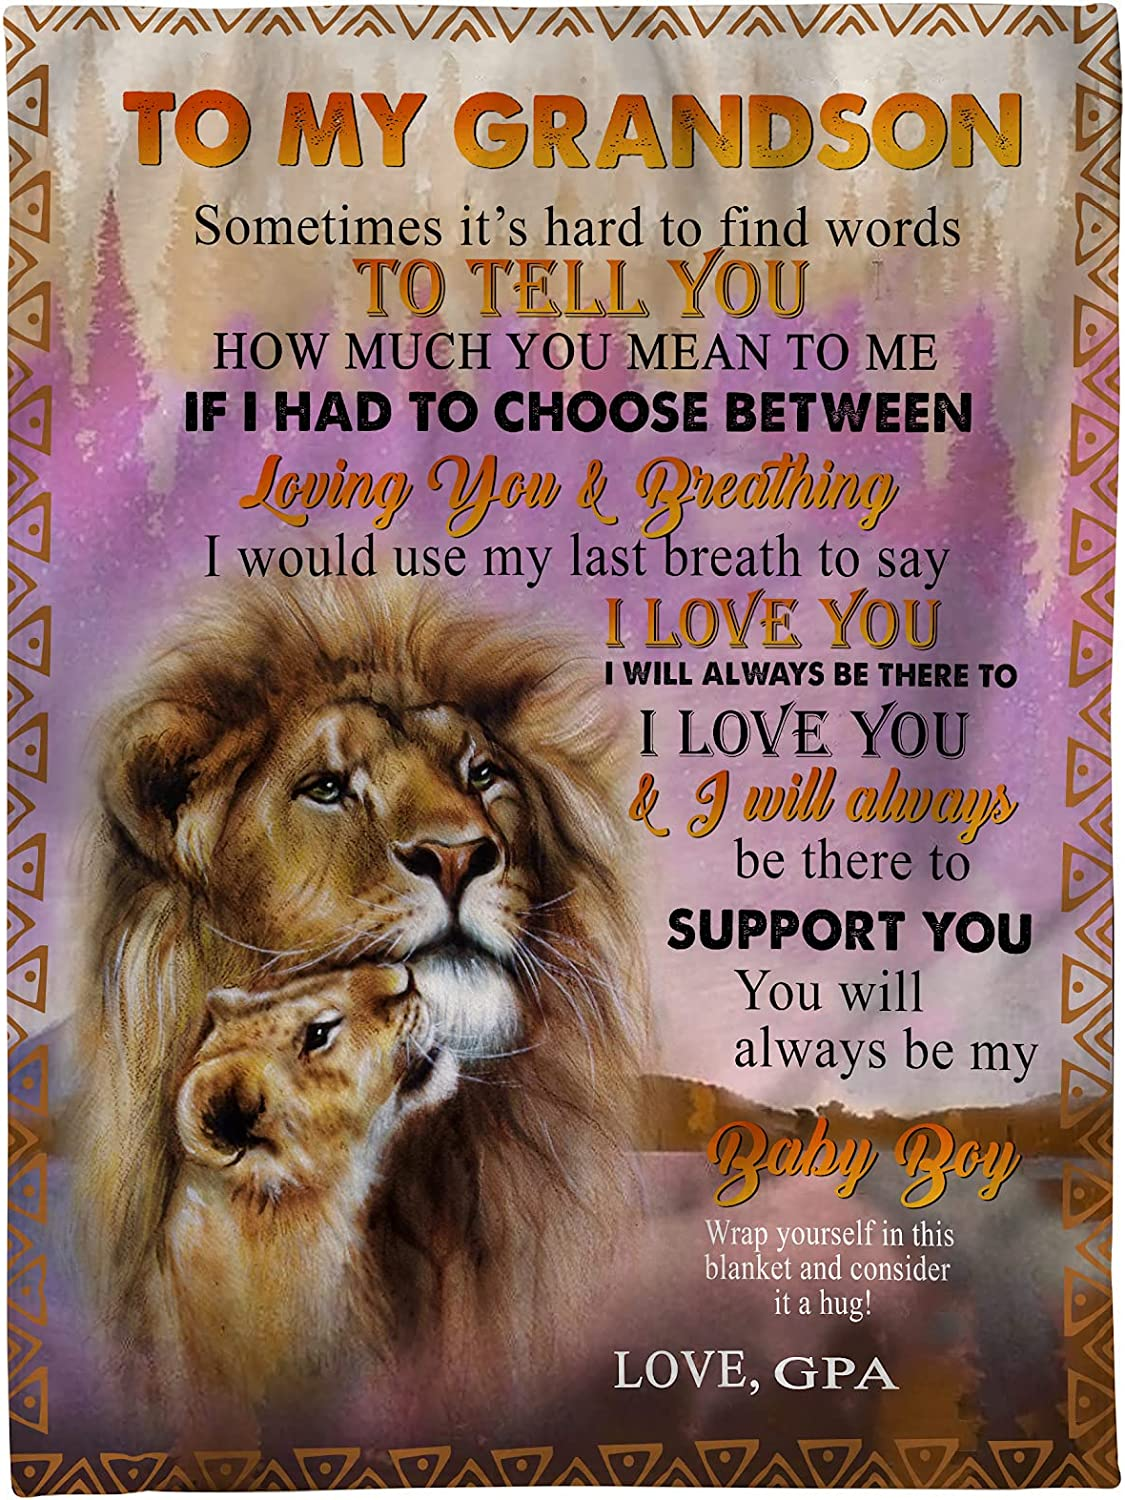 Branded goods Personalized Blanket-to My Grandson Lion You Love Always Support Louisville-Jefferson County Mall